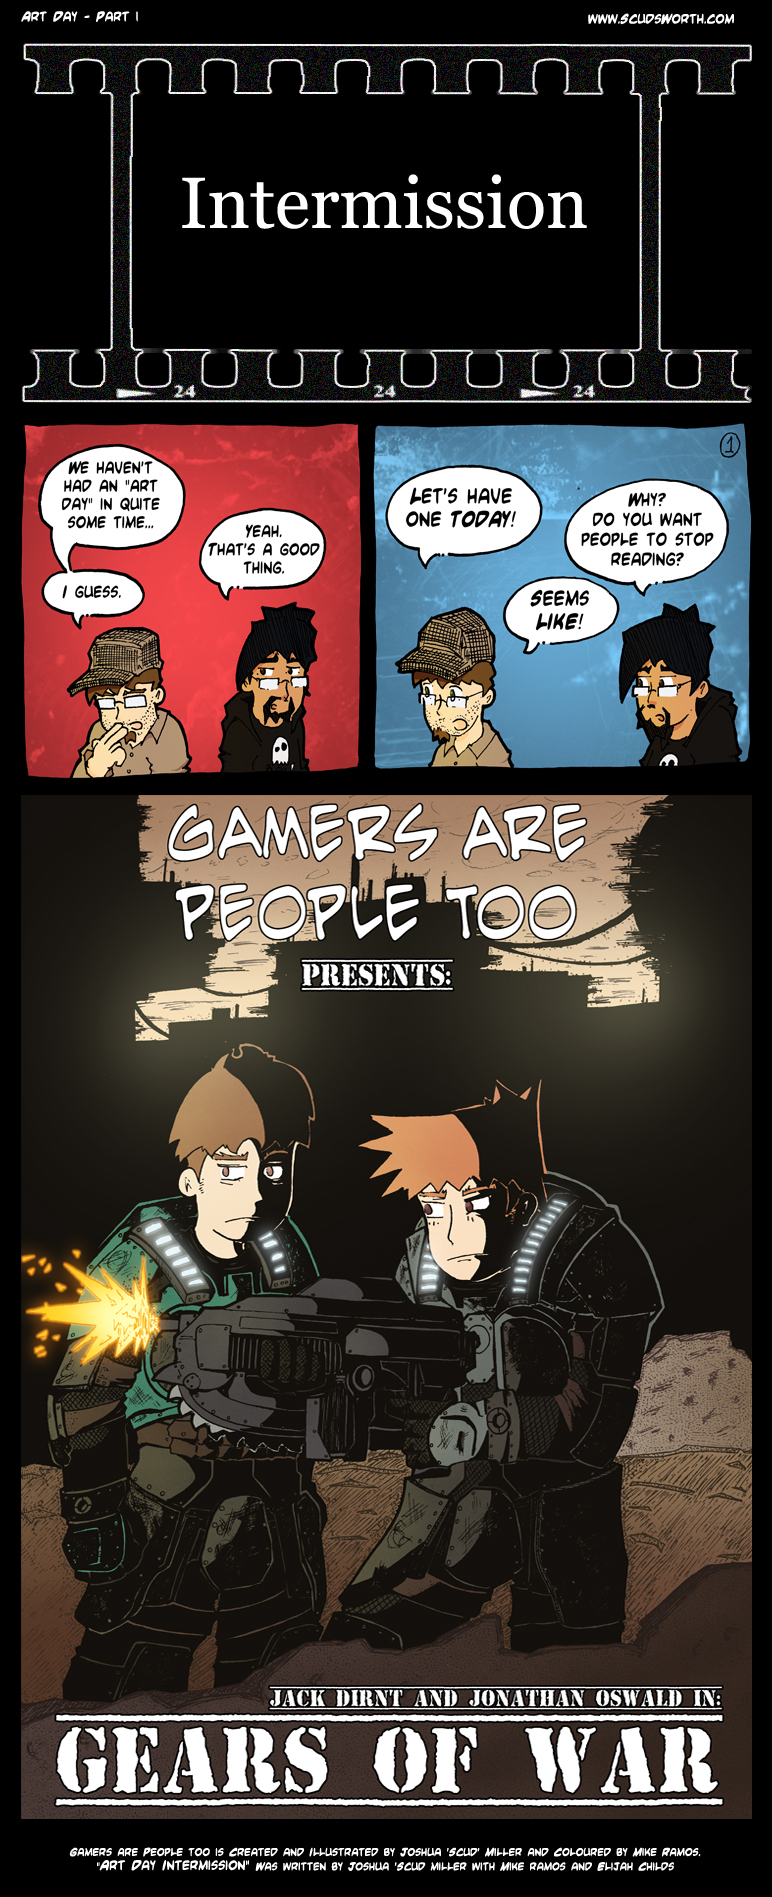 88 - Gamers Are People Too - Art Day Intermission 1.jpg